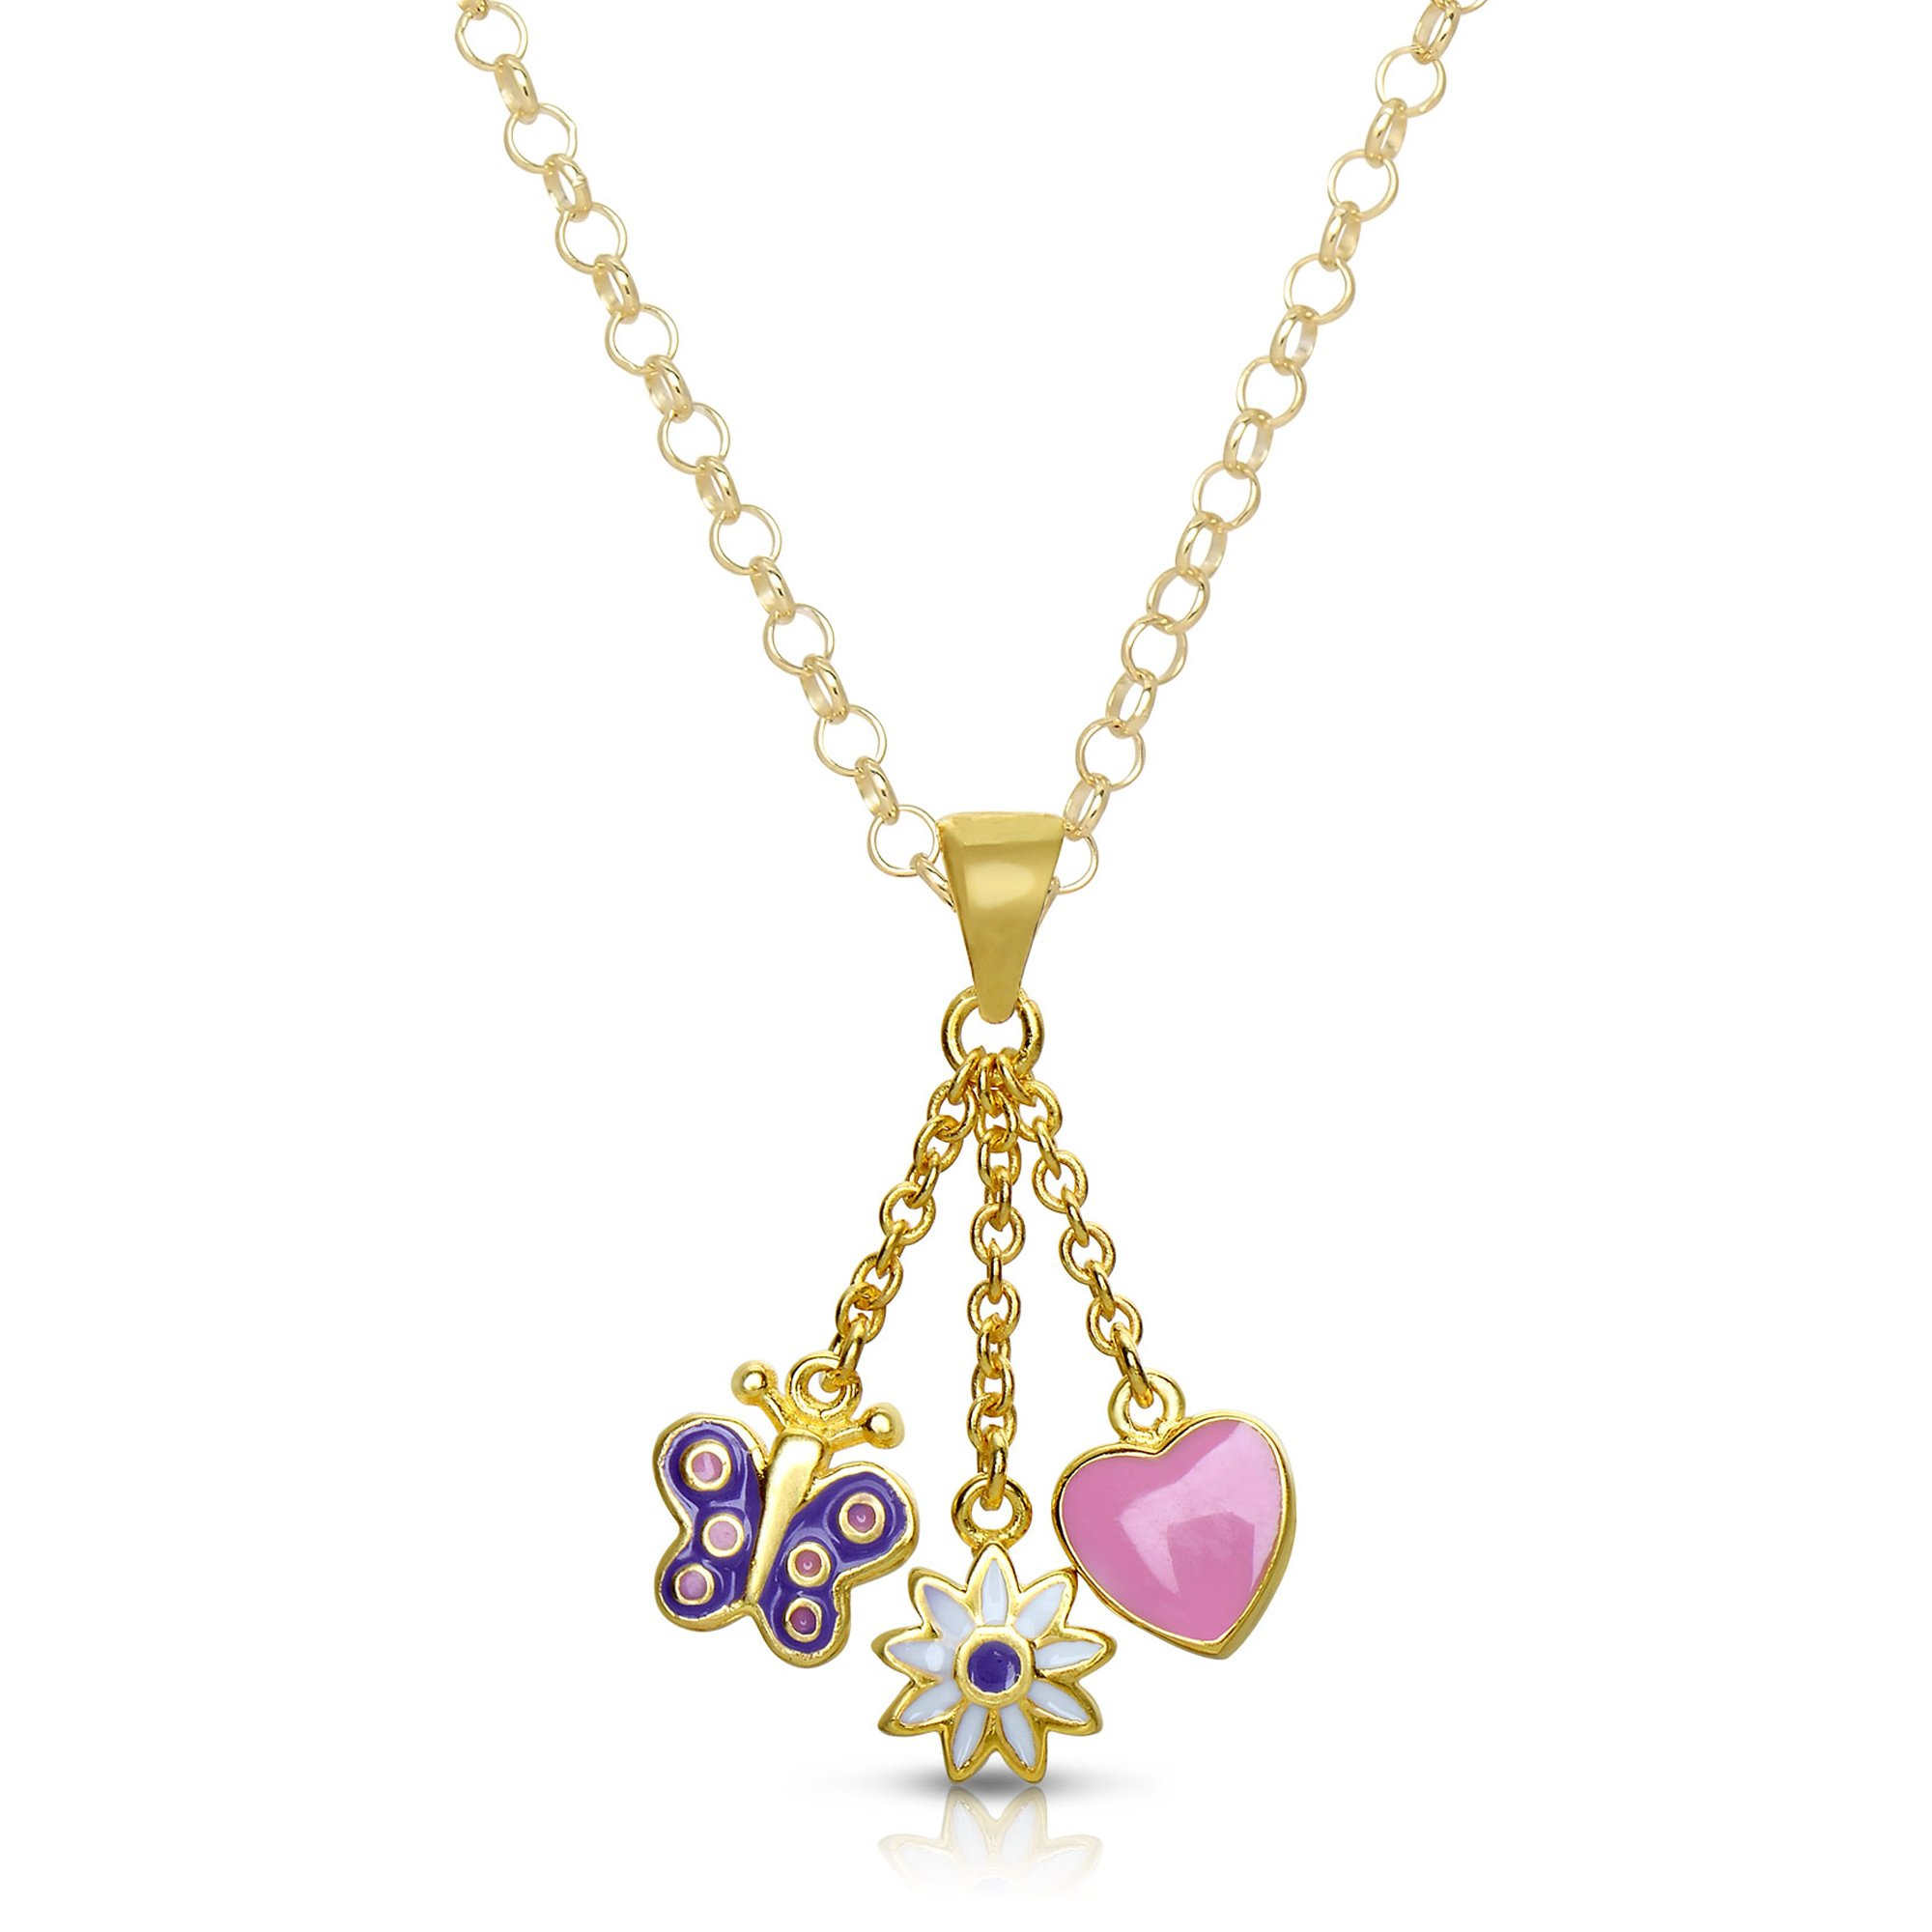 Necklace for Girls Gold Plated w// Purple Enamel By Lily Nily Princess Dress Necklace